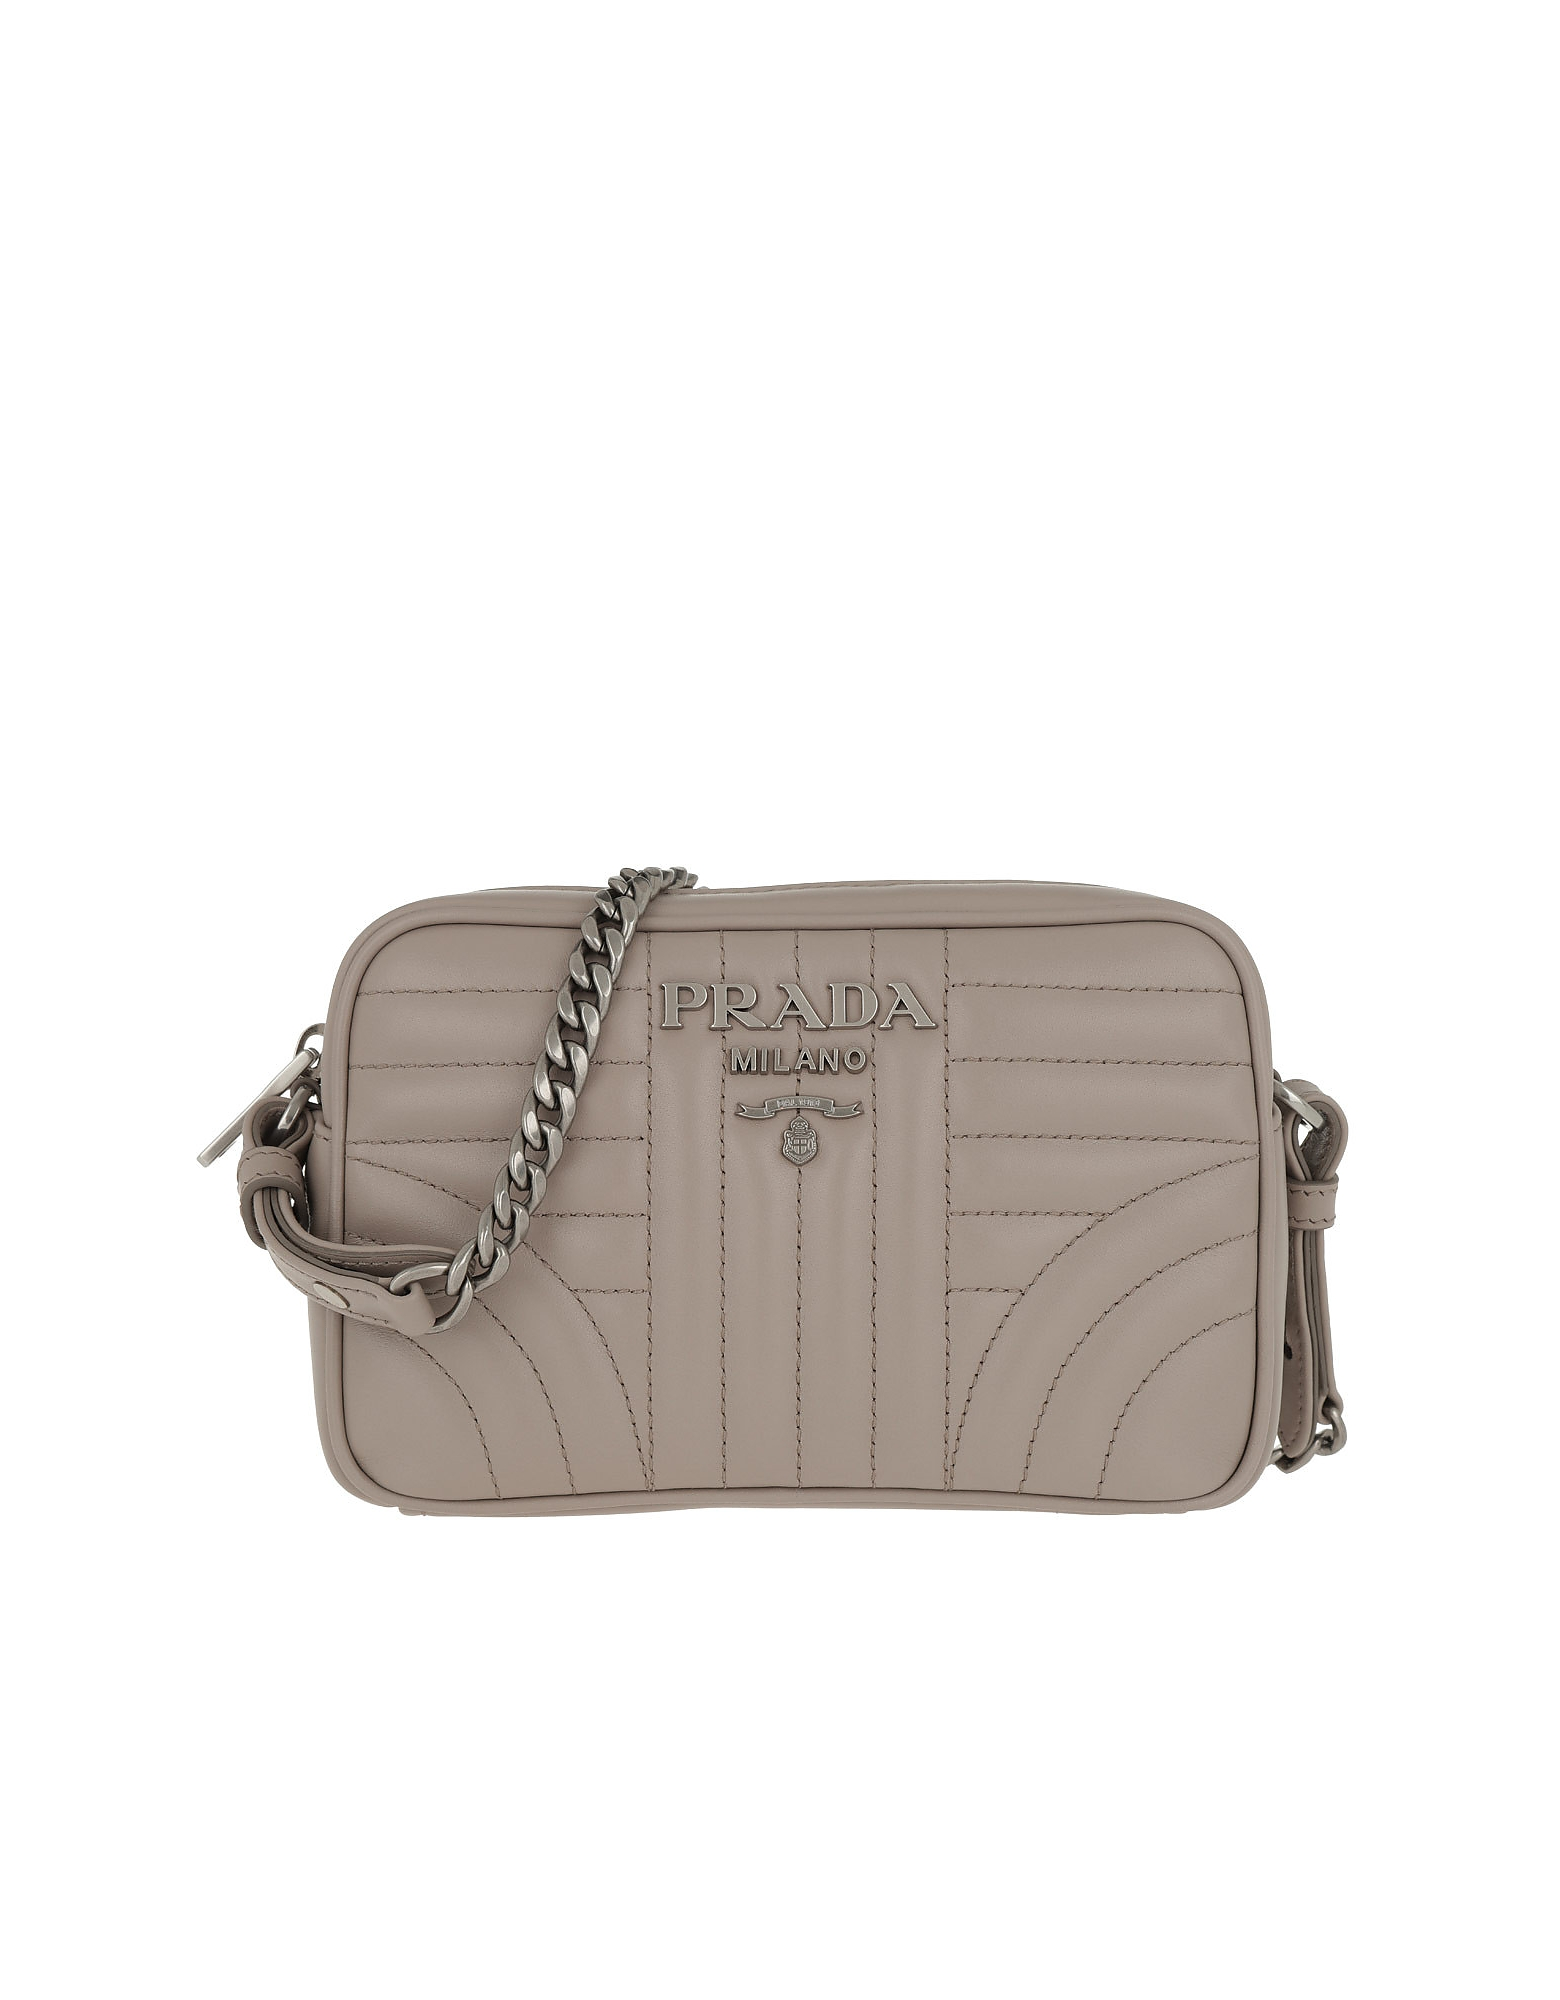 Diagramme Crossbody Bag Leather Pomice 2